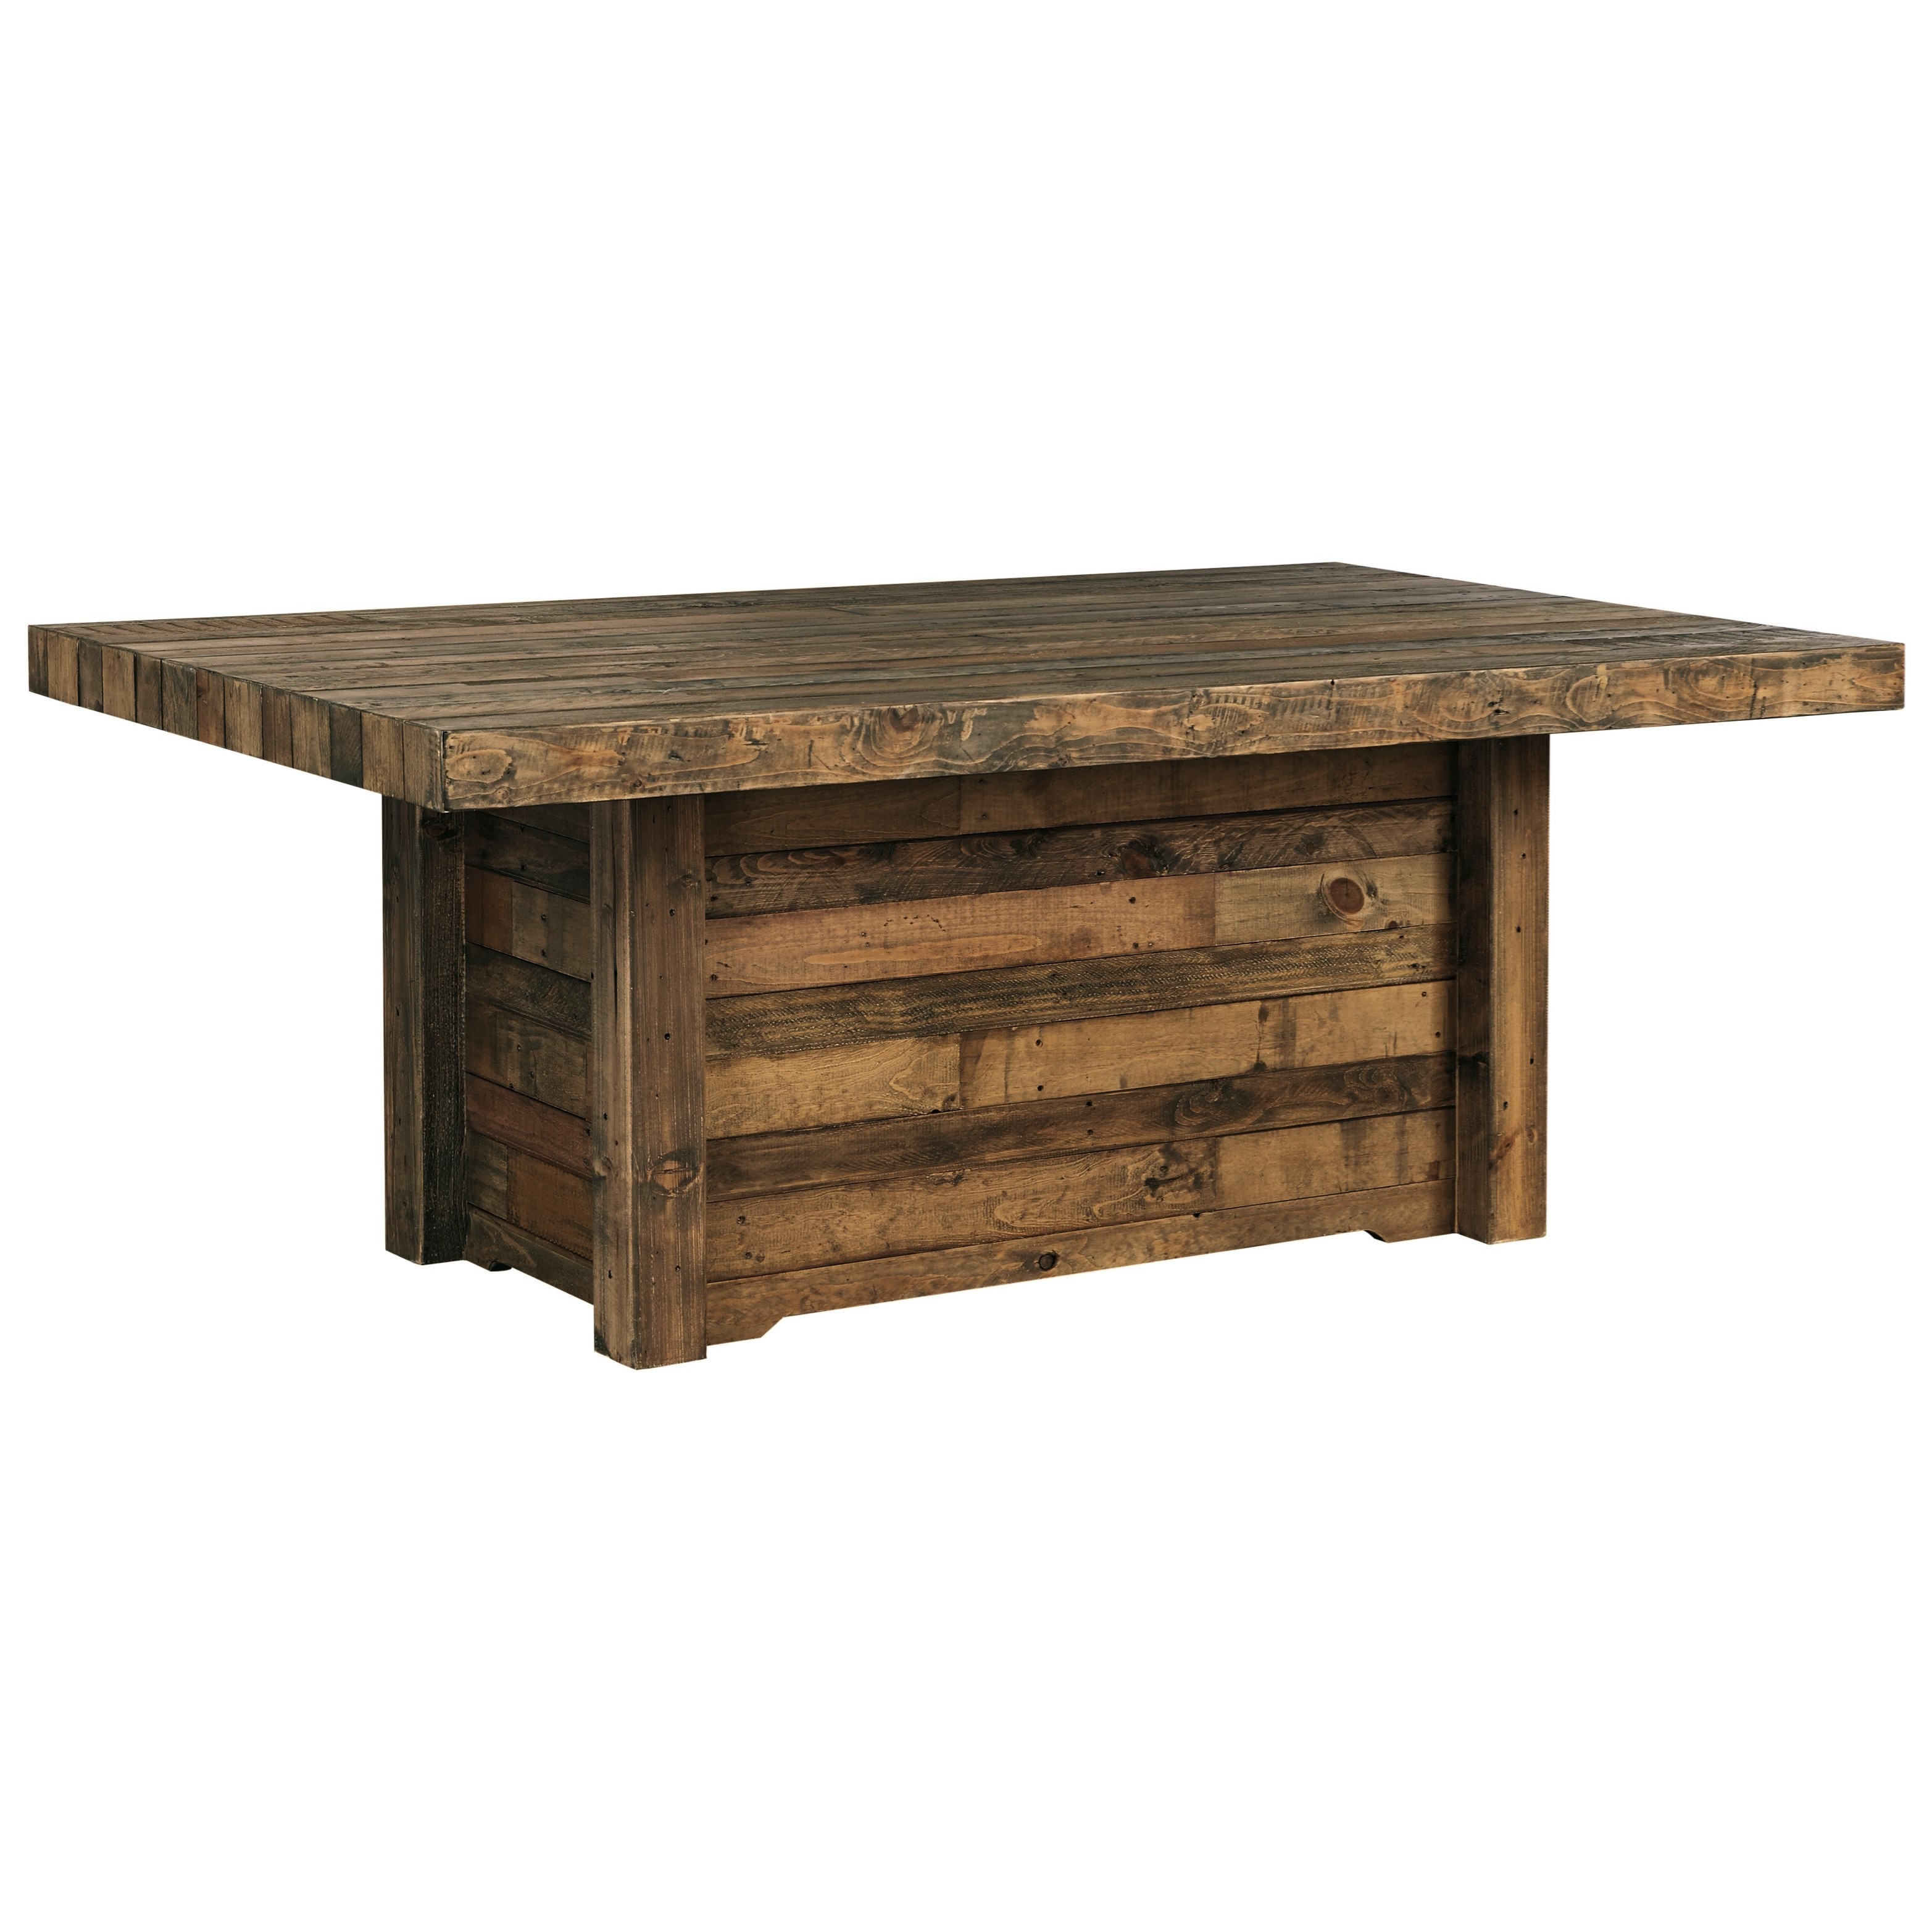 Sommerford Rectangular Dining Room Table by Ashley (Signature Design) at Johnny Janosik